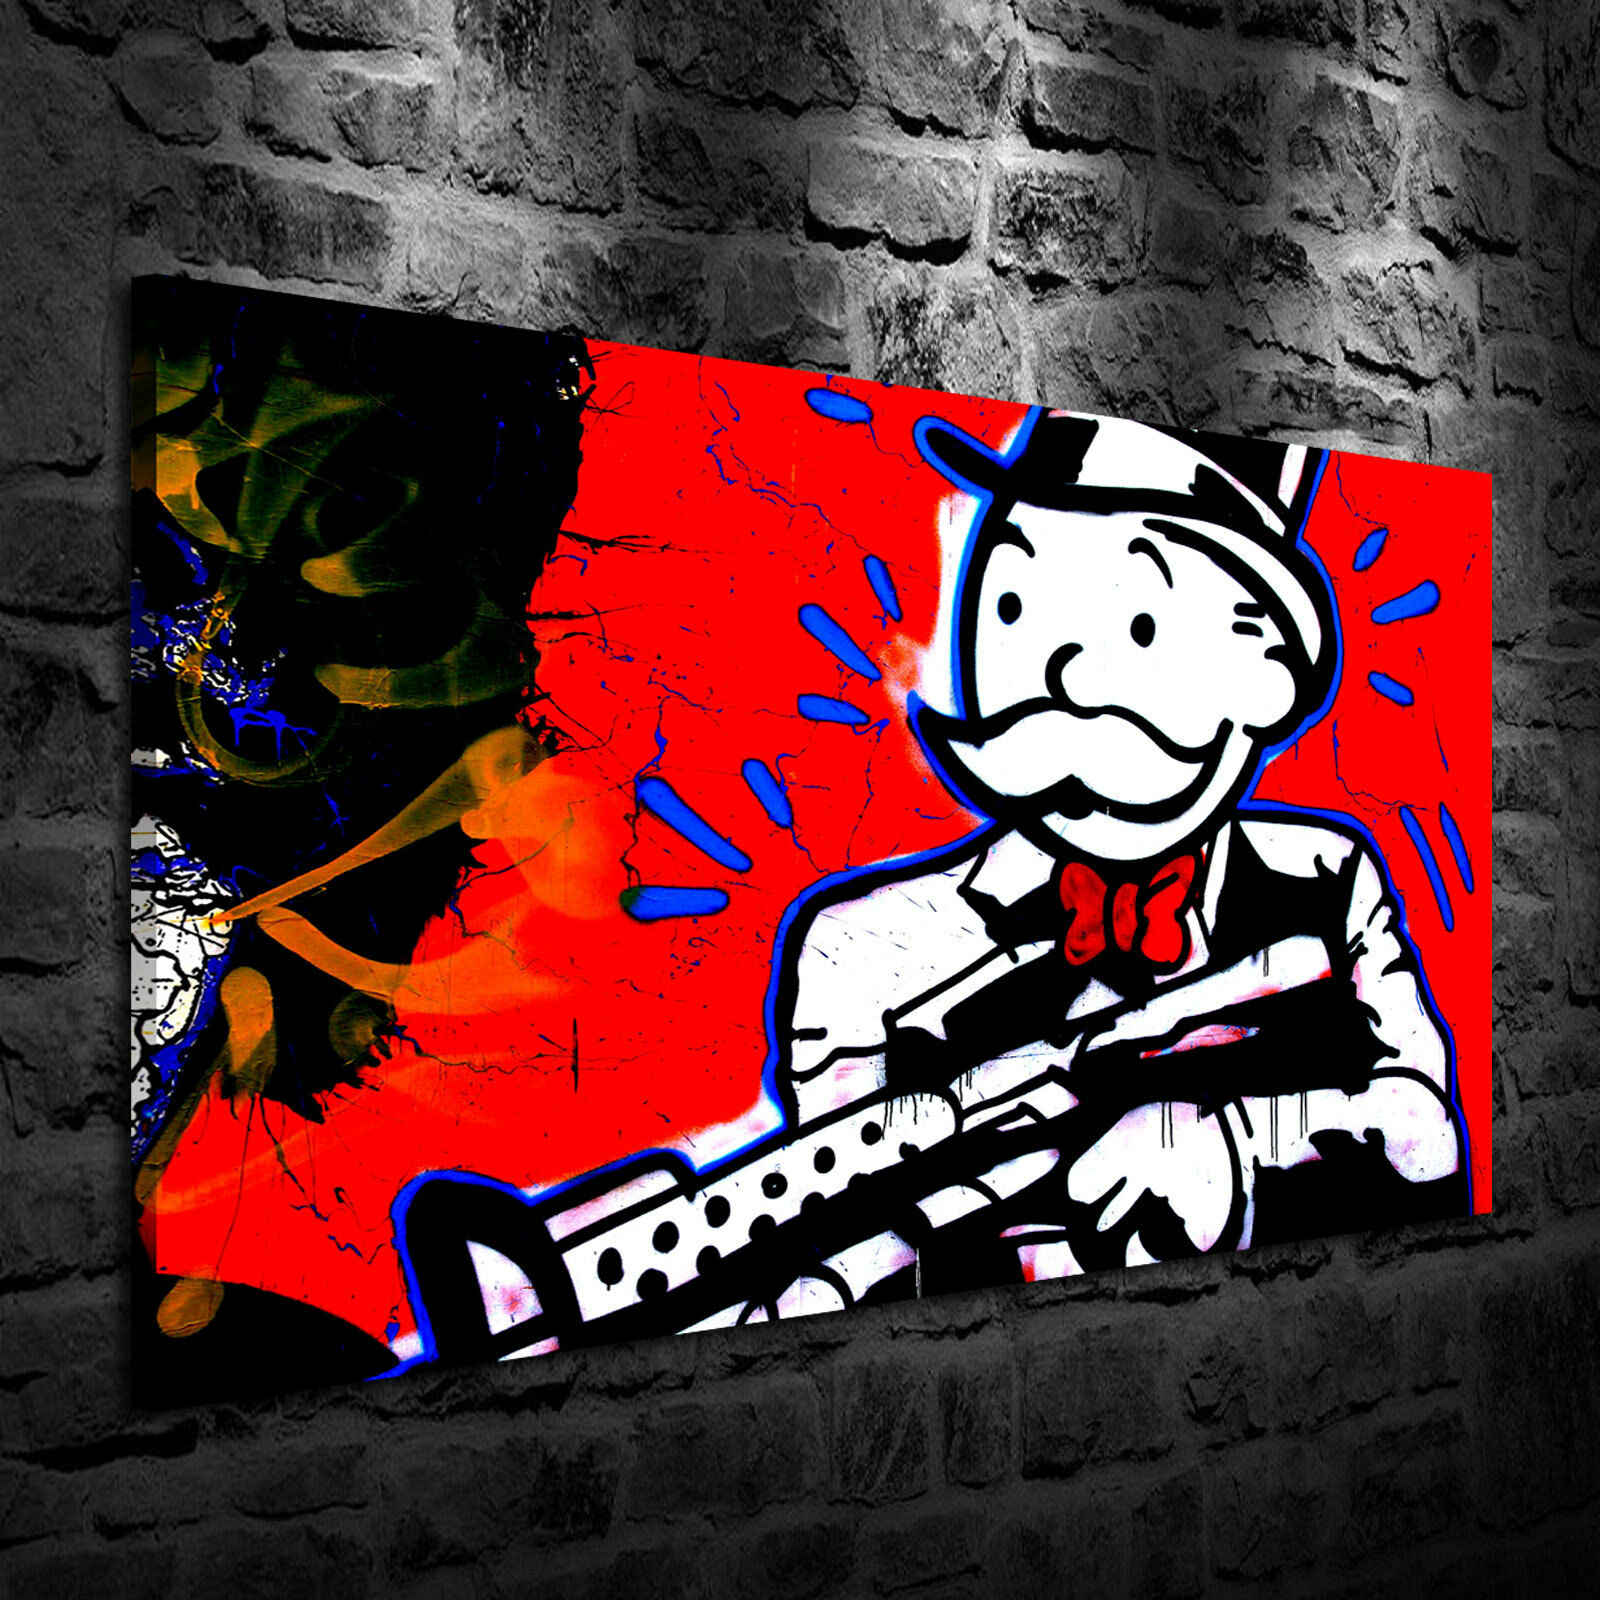 Alec Monopolys Gun Abstract Wall Art Oil Painting Poster Canvas Painting Print Pictures for Living Room Home Decor 5